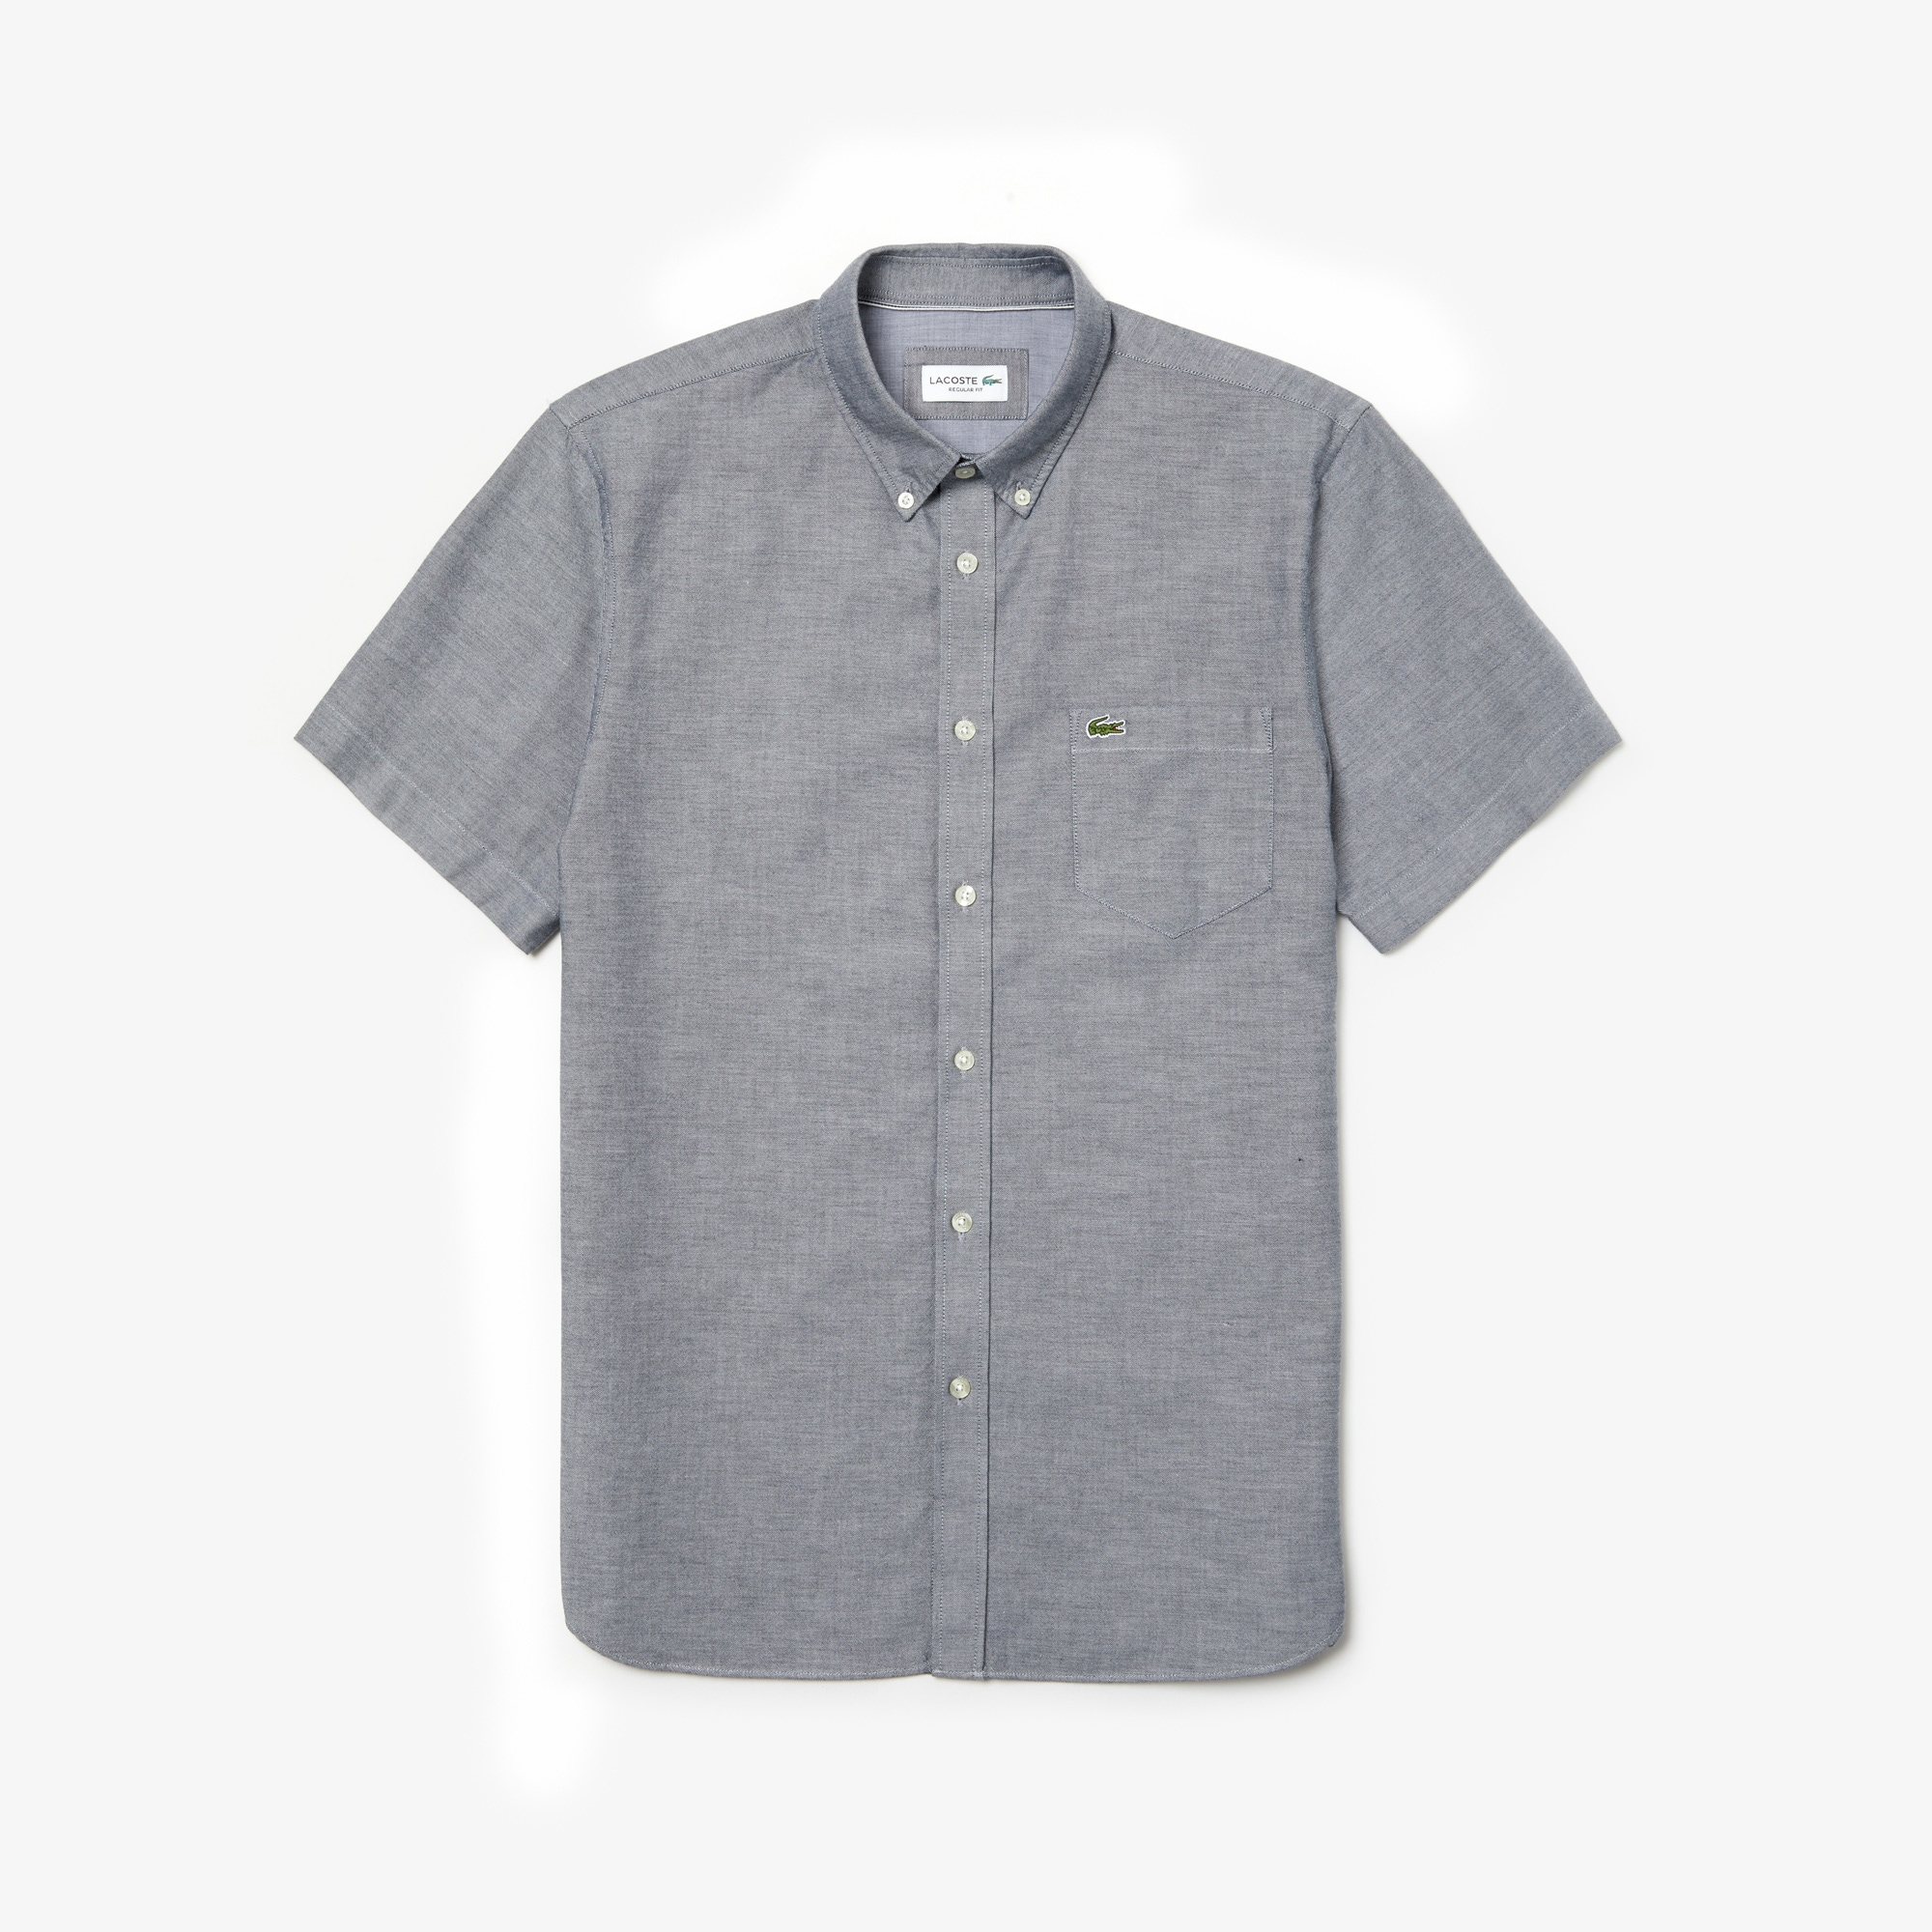 Camisa Regular Fit De Manga Corta De Algodón Oxford Liso